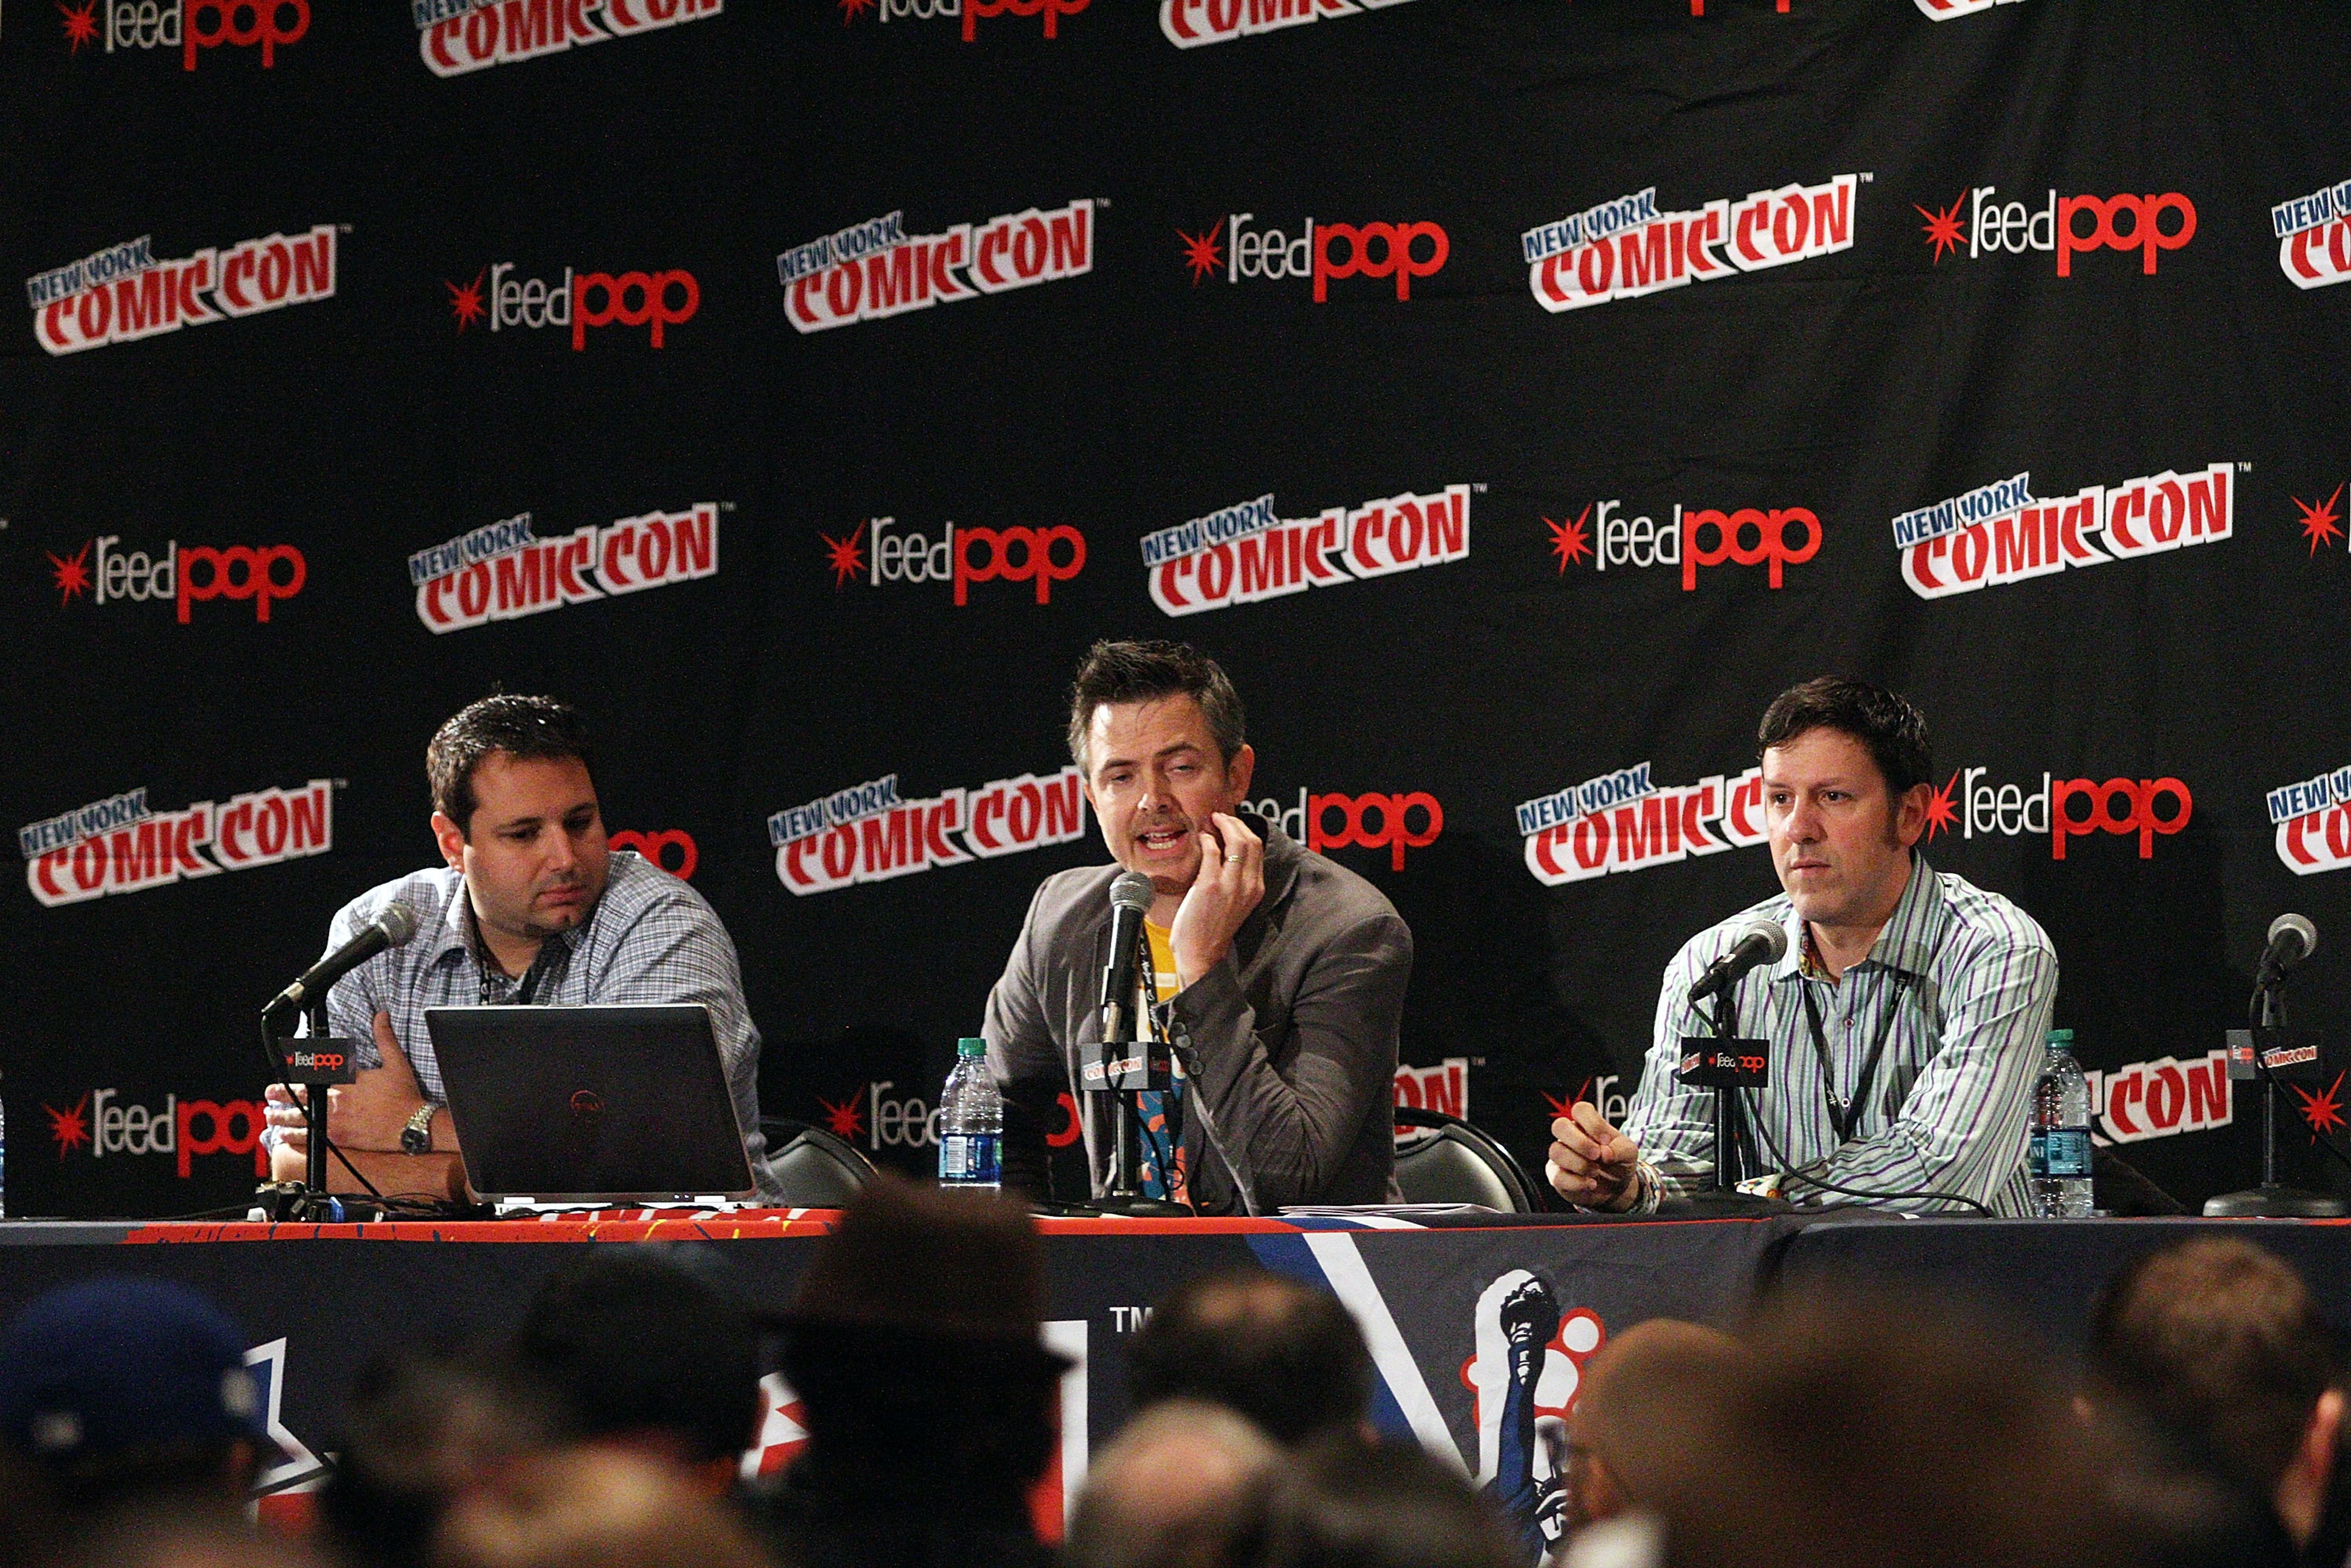 Joe Ninivaggi, Steve Bono and Steve Evans attend the Hasbro Star Wars toy launch unveiling at New York Comic-Con 2015.